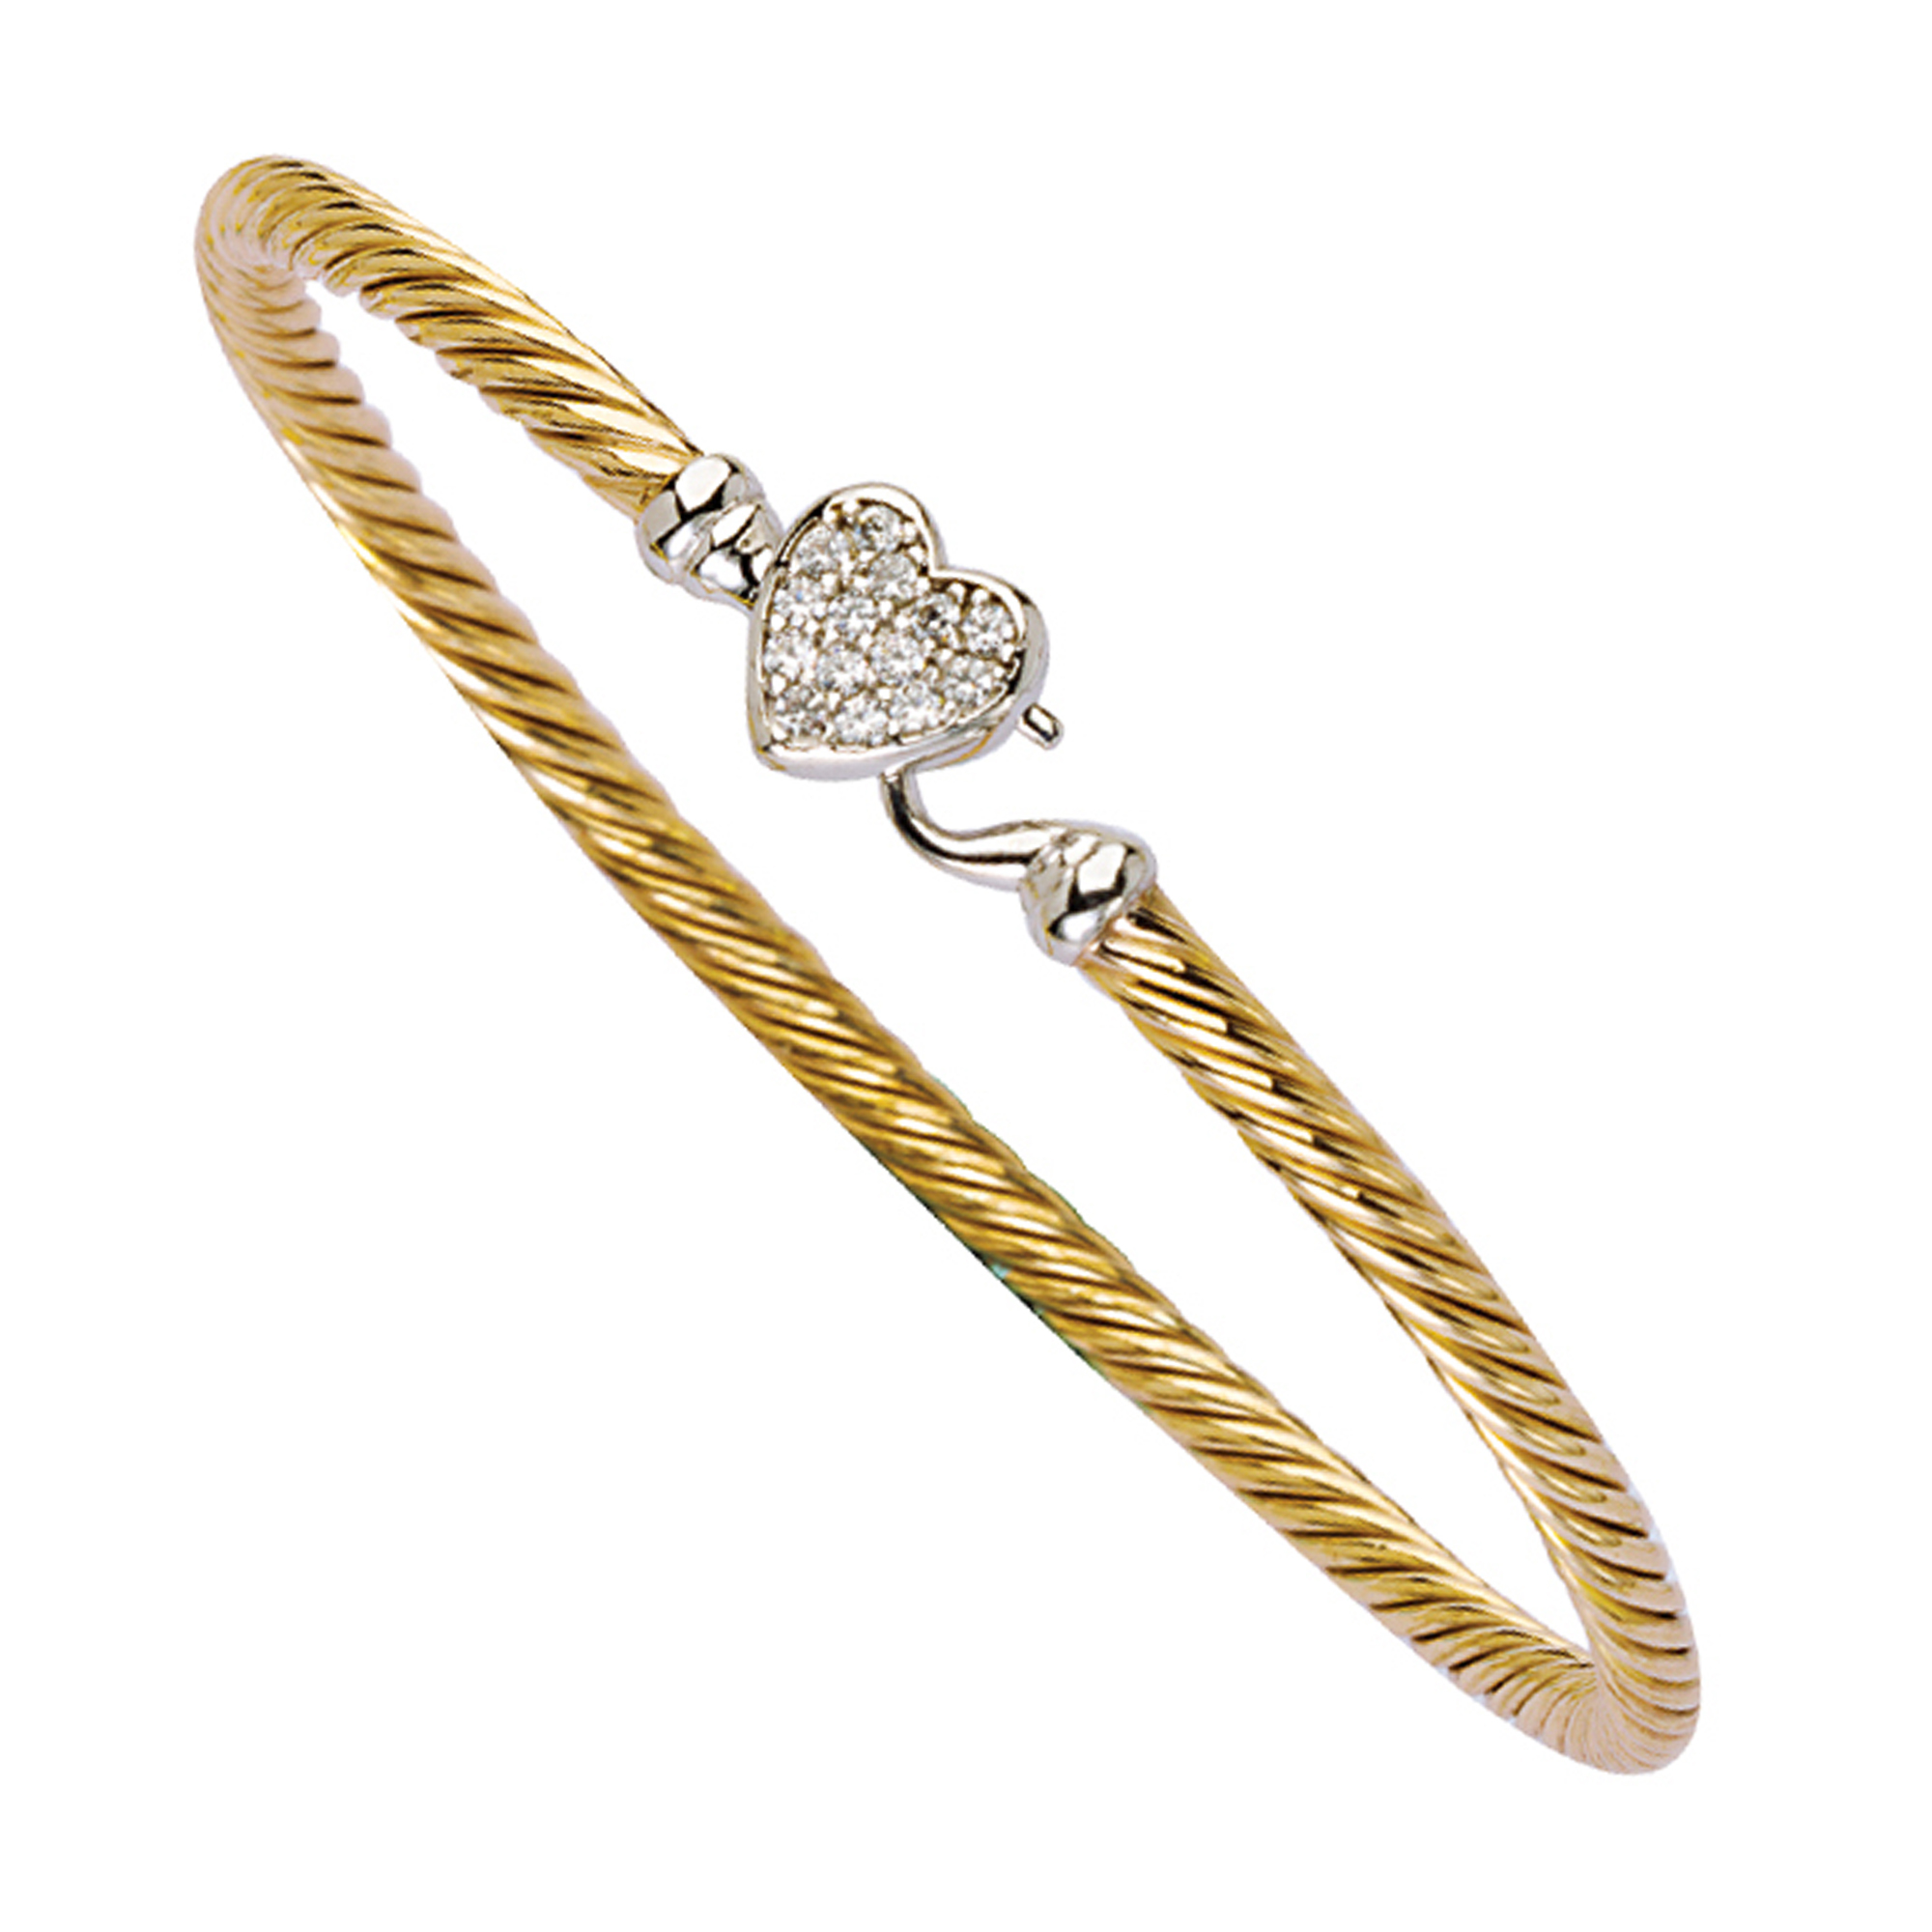 Bangle Bracelet, Cz Heart Twisted Bangle/Hook Lock